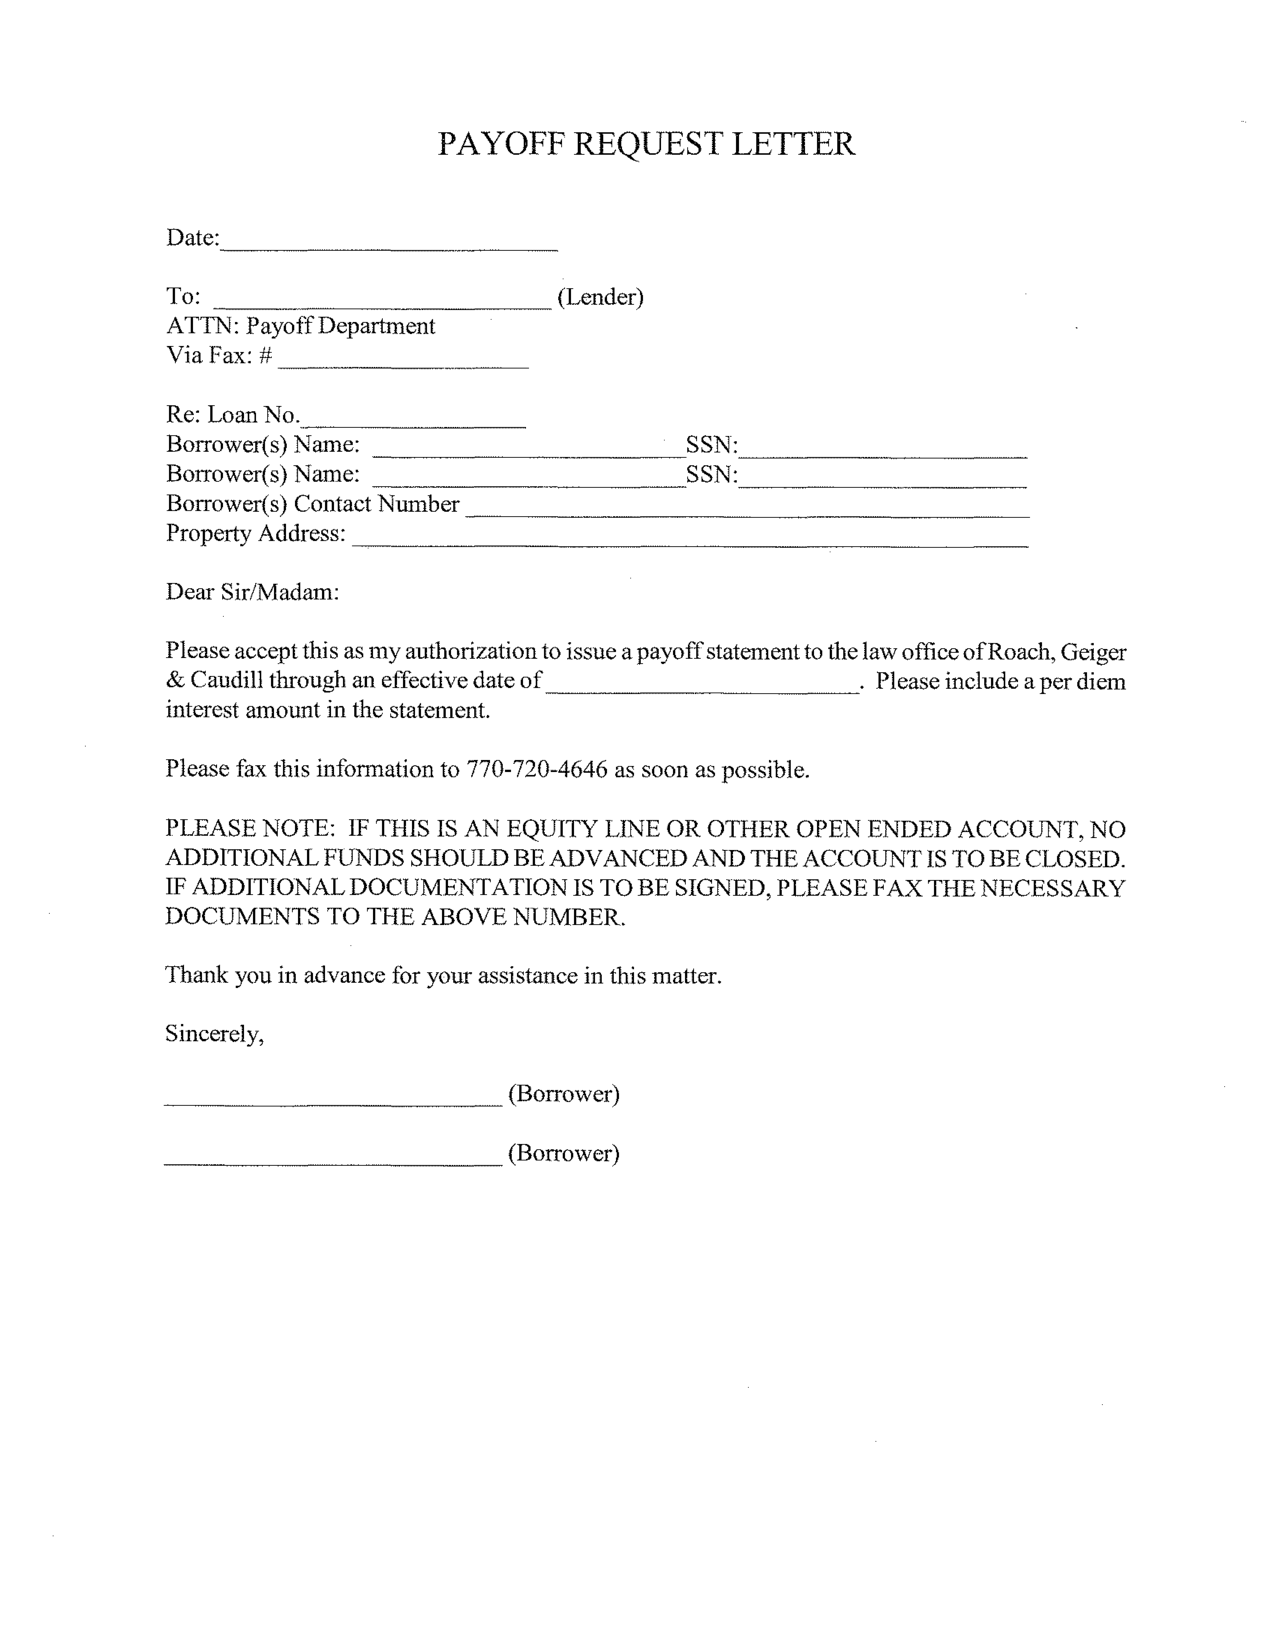 Pay Raise Sample Letter Best Ideas About Employee Recommendation